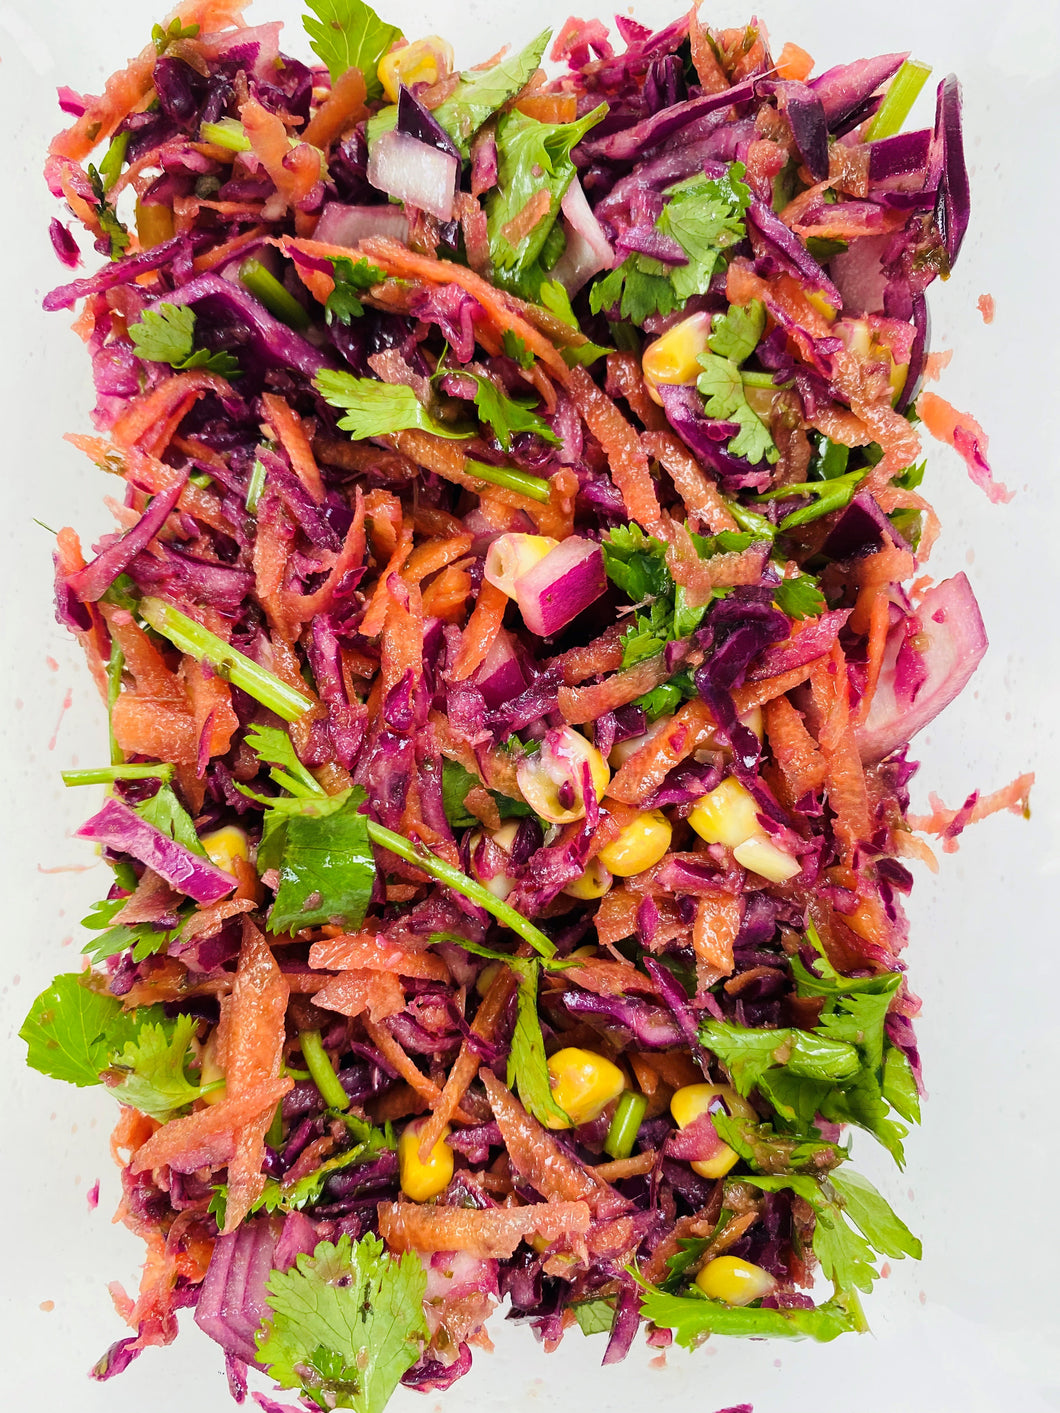 Spicy slaw salad - 480g